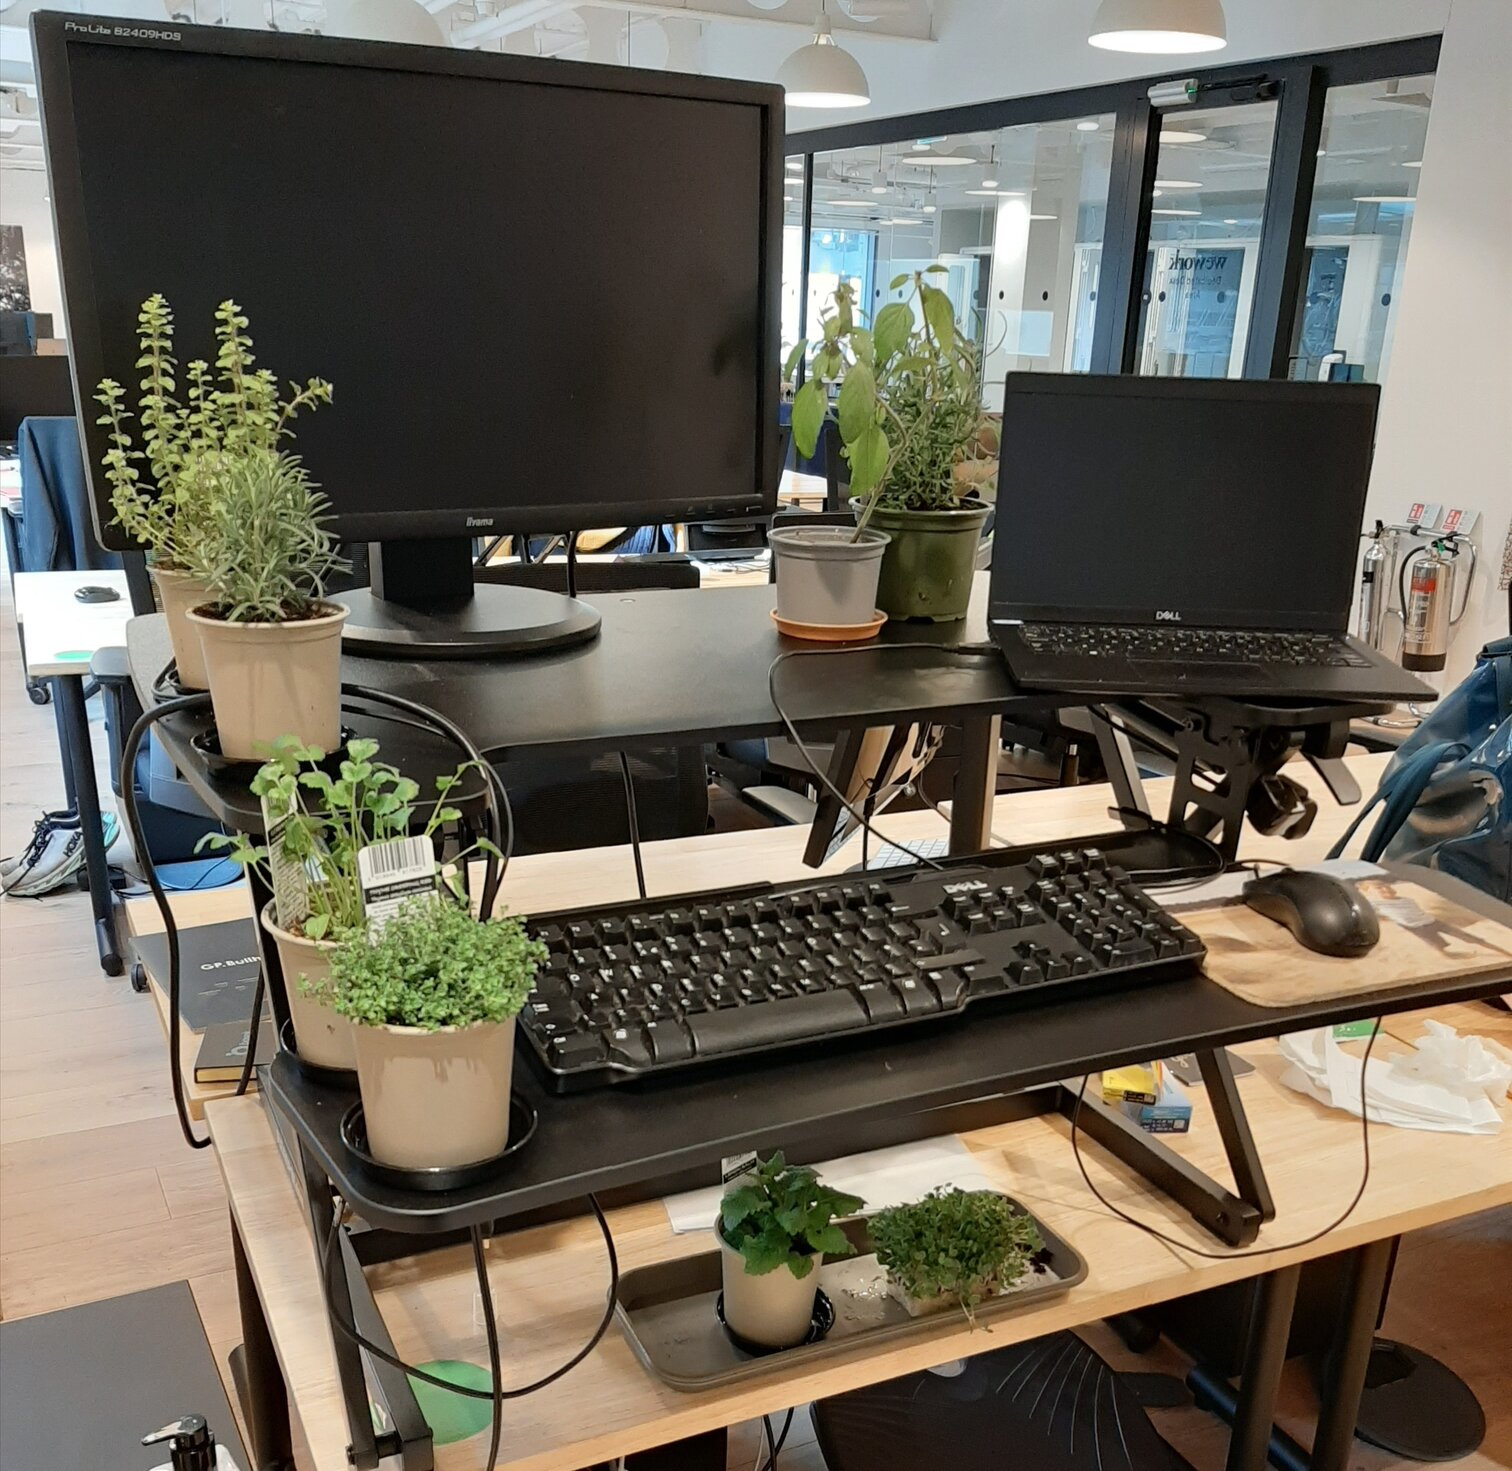 getting a plant for your home office setup is great for your health